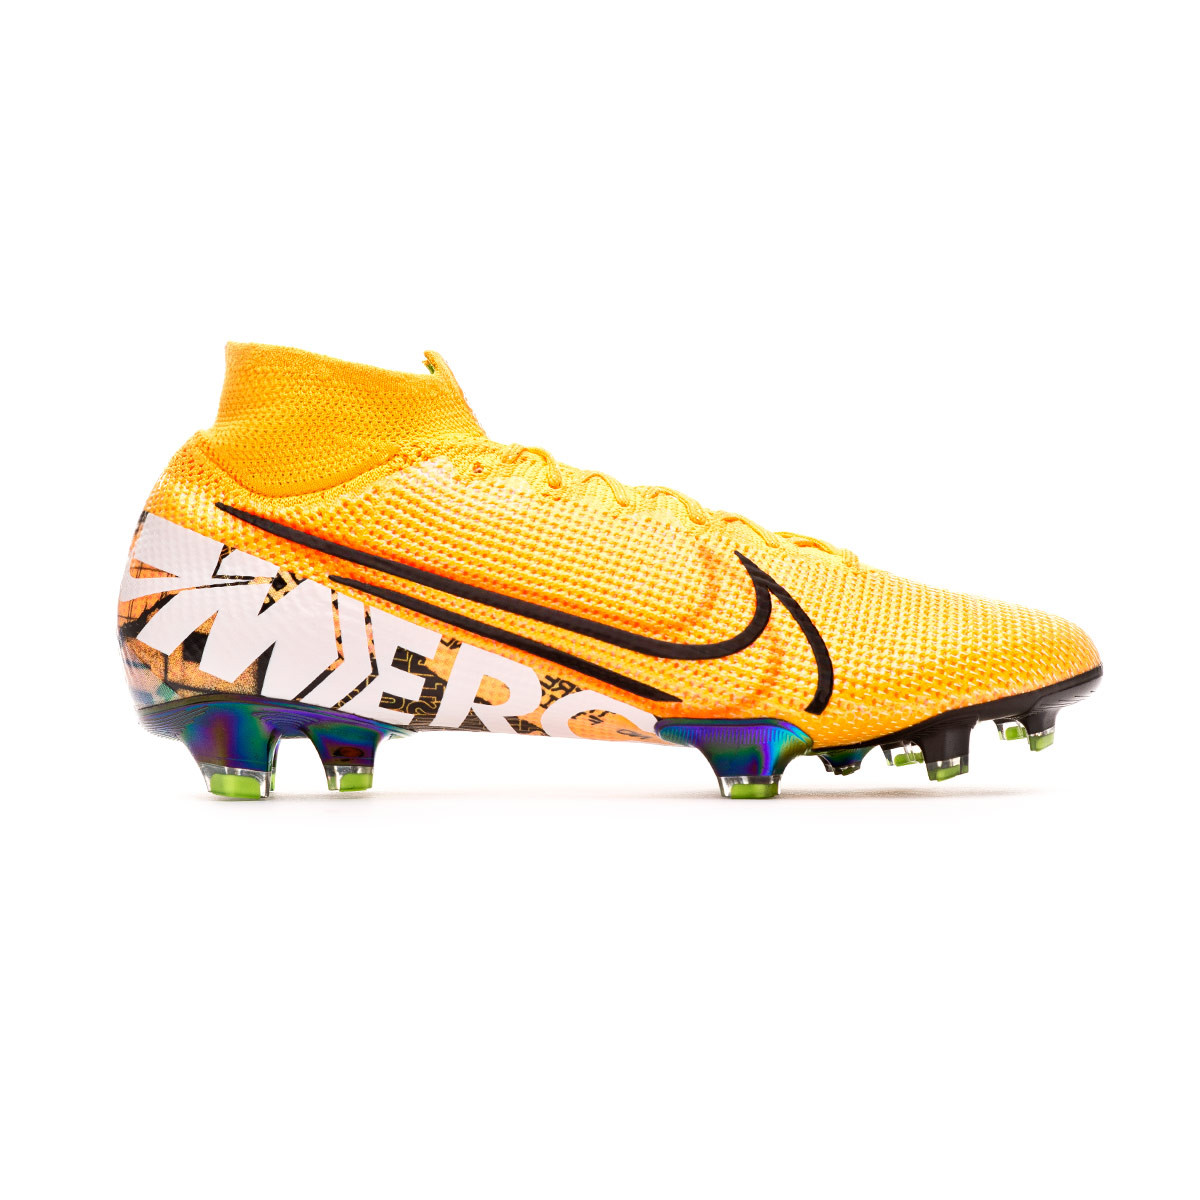 Chaussure de foot Nike Mercurial Superfly VI Elite FG Hyper